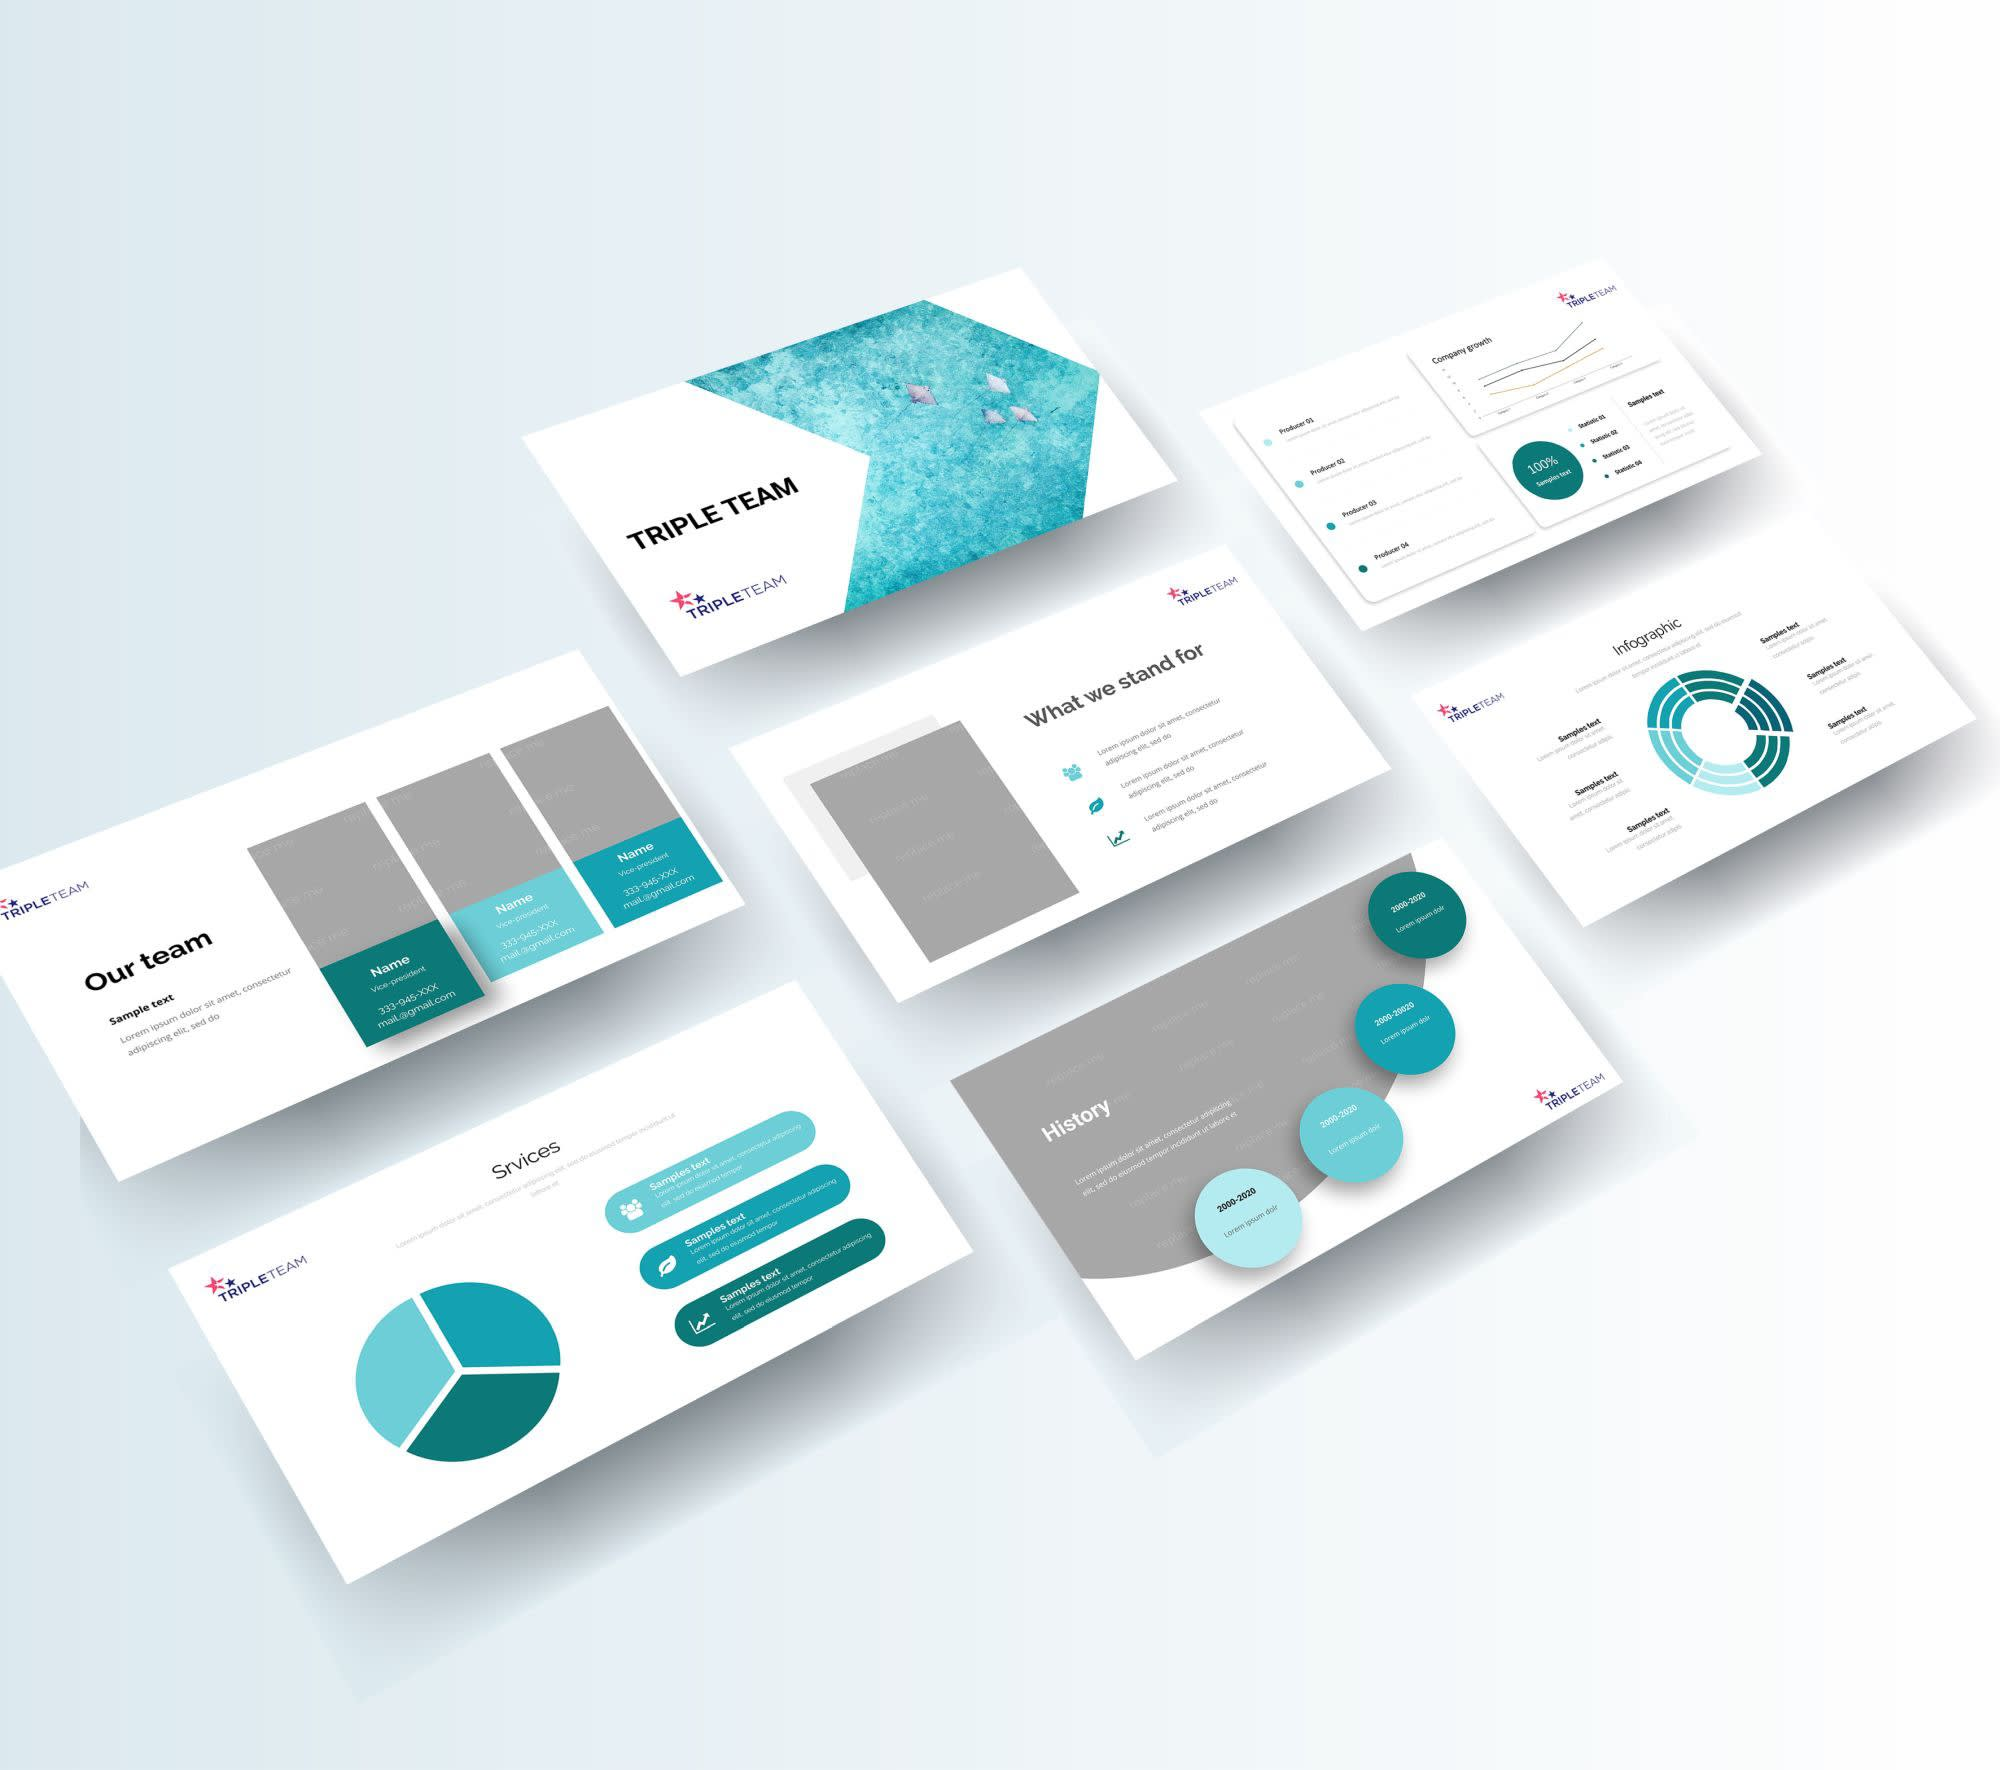 I will design brand style guide or brand identity book manual